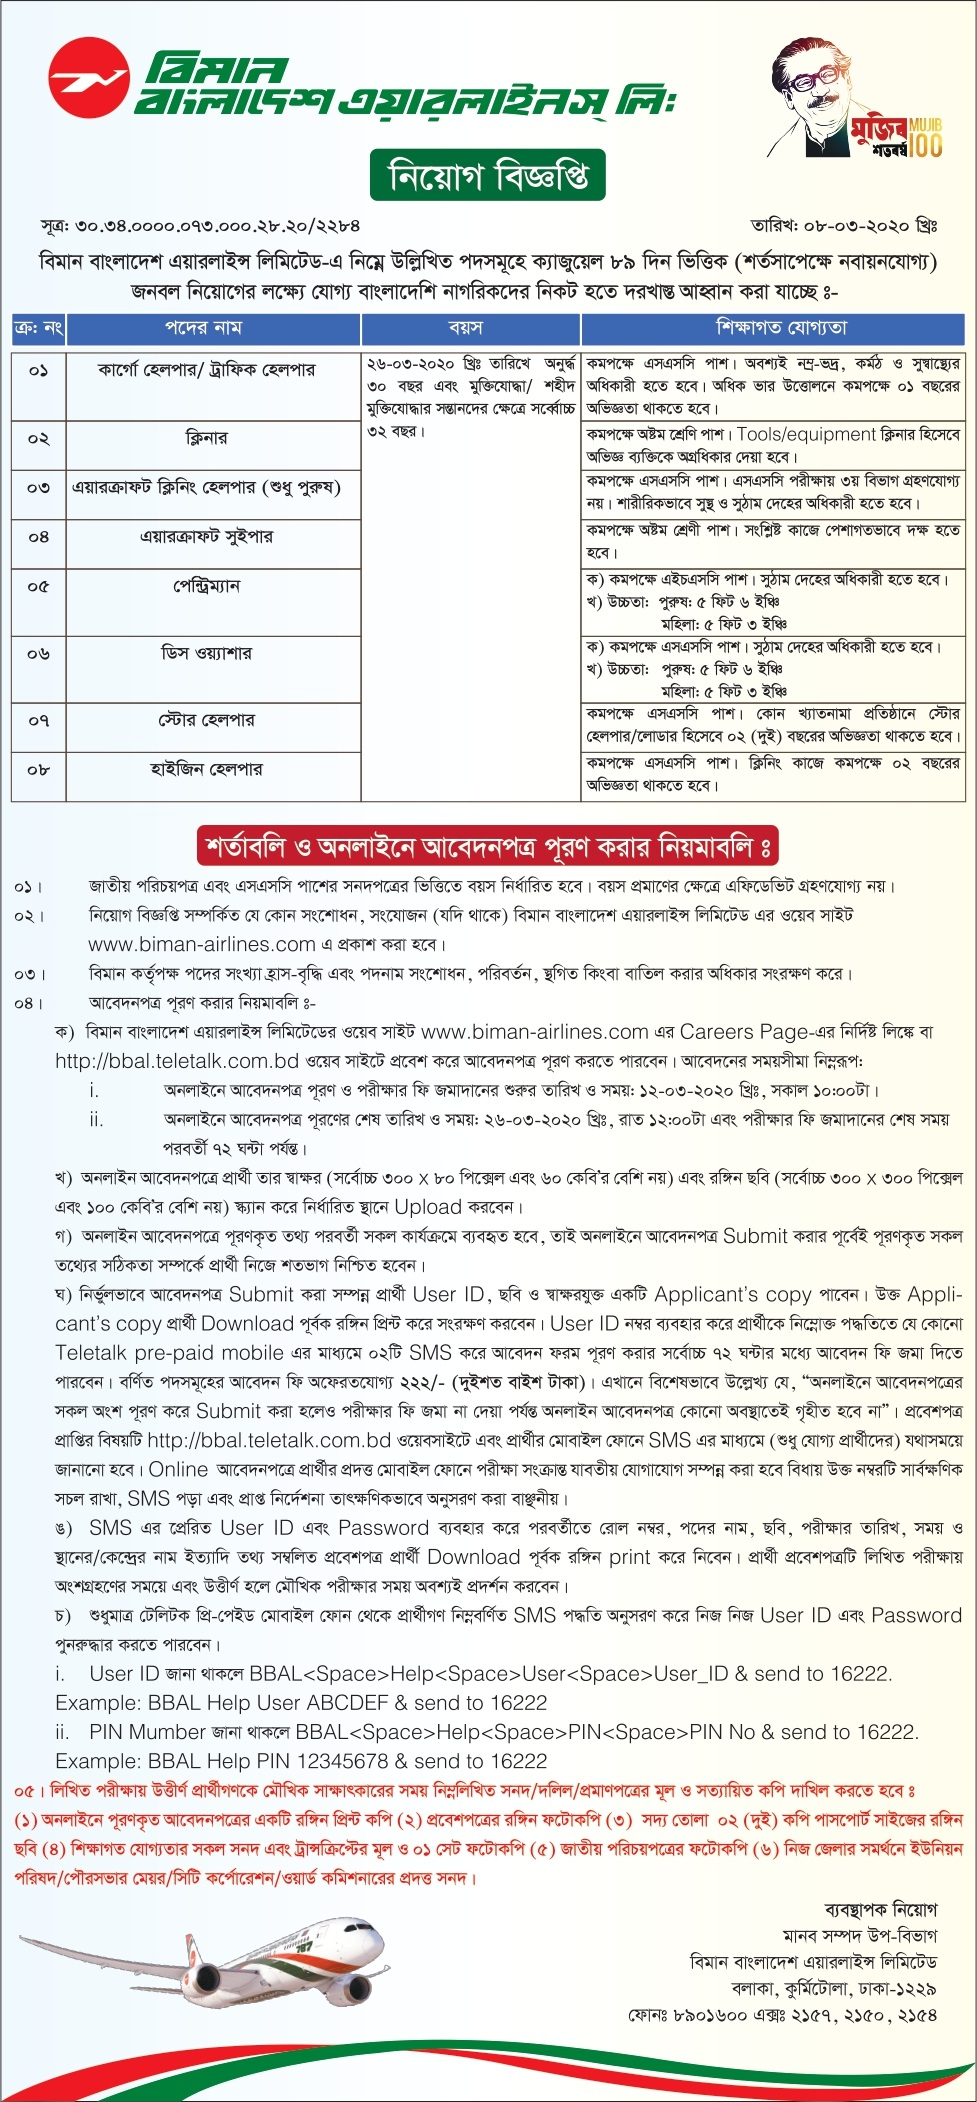 Biman Bangladesh Airlines Limited Job Circular 2020